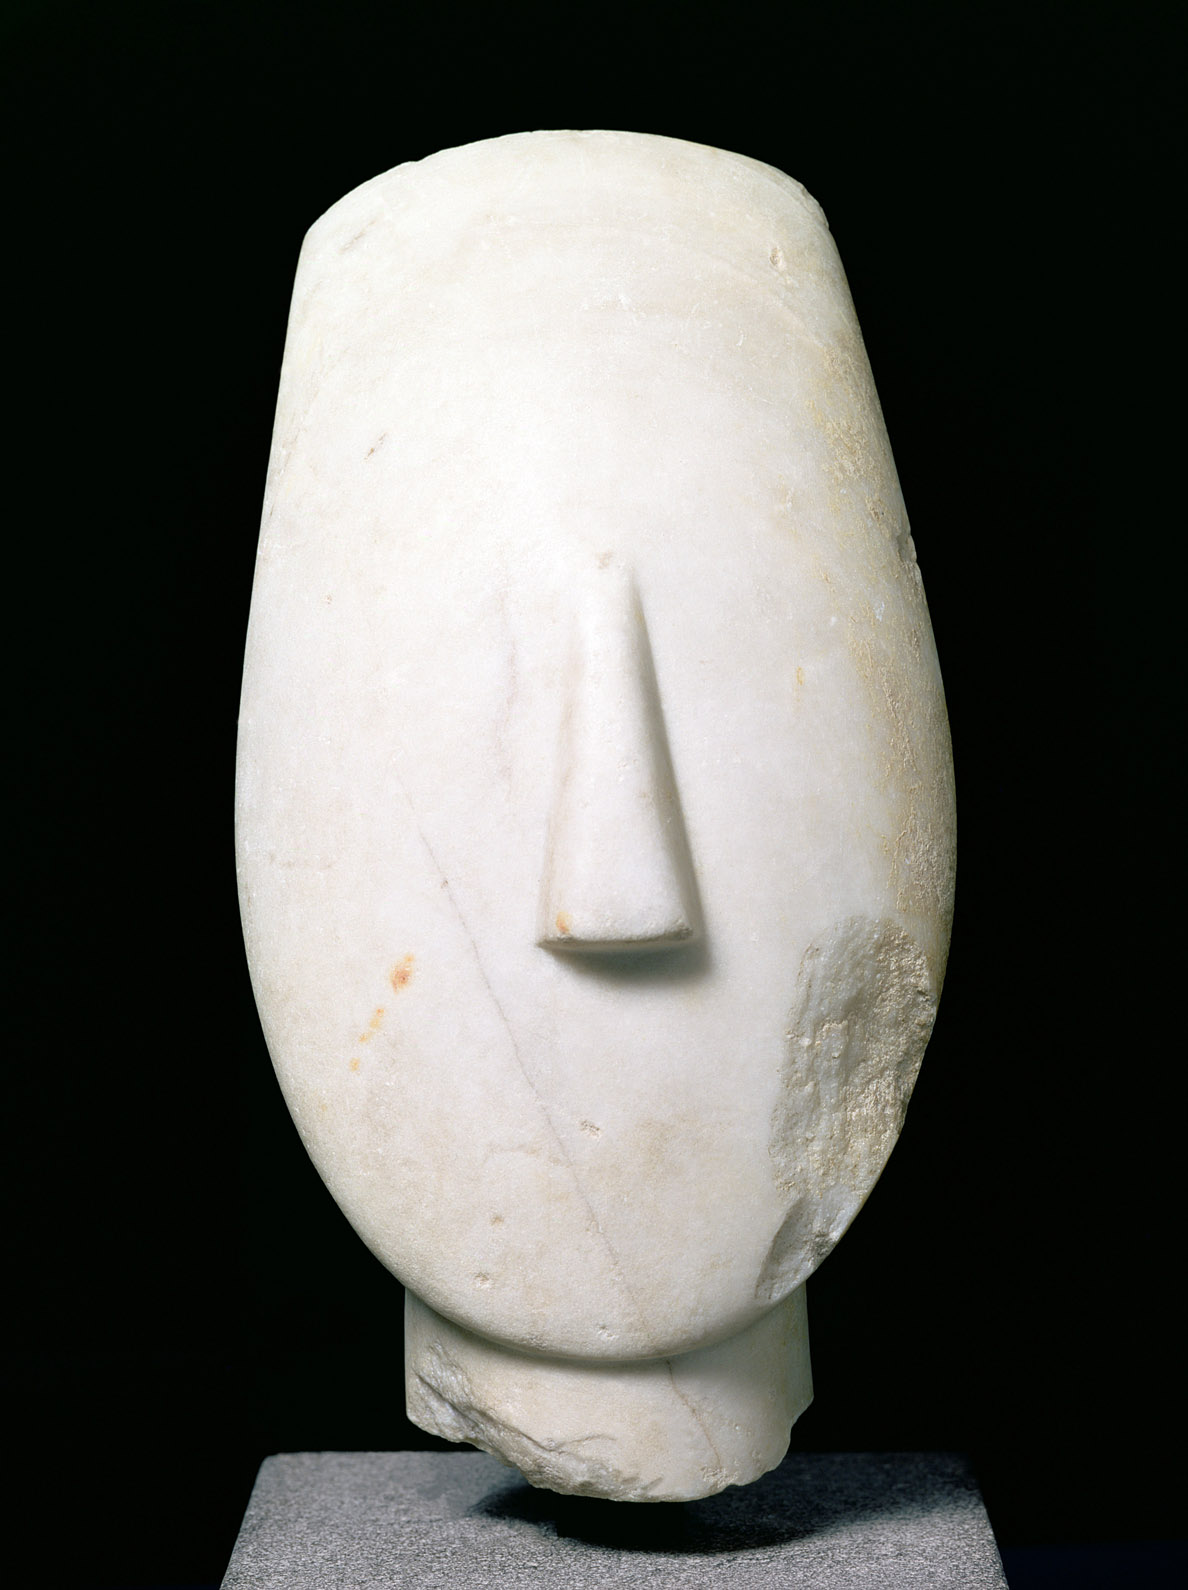 Head of Cycladic female statue, Keros, c. 2500 BC. © Louvre/Giraudon/The Bridgeman Art Library International.